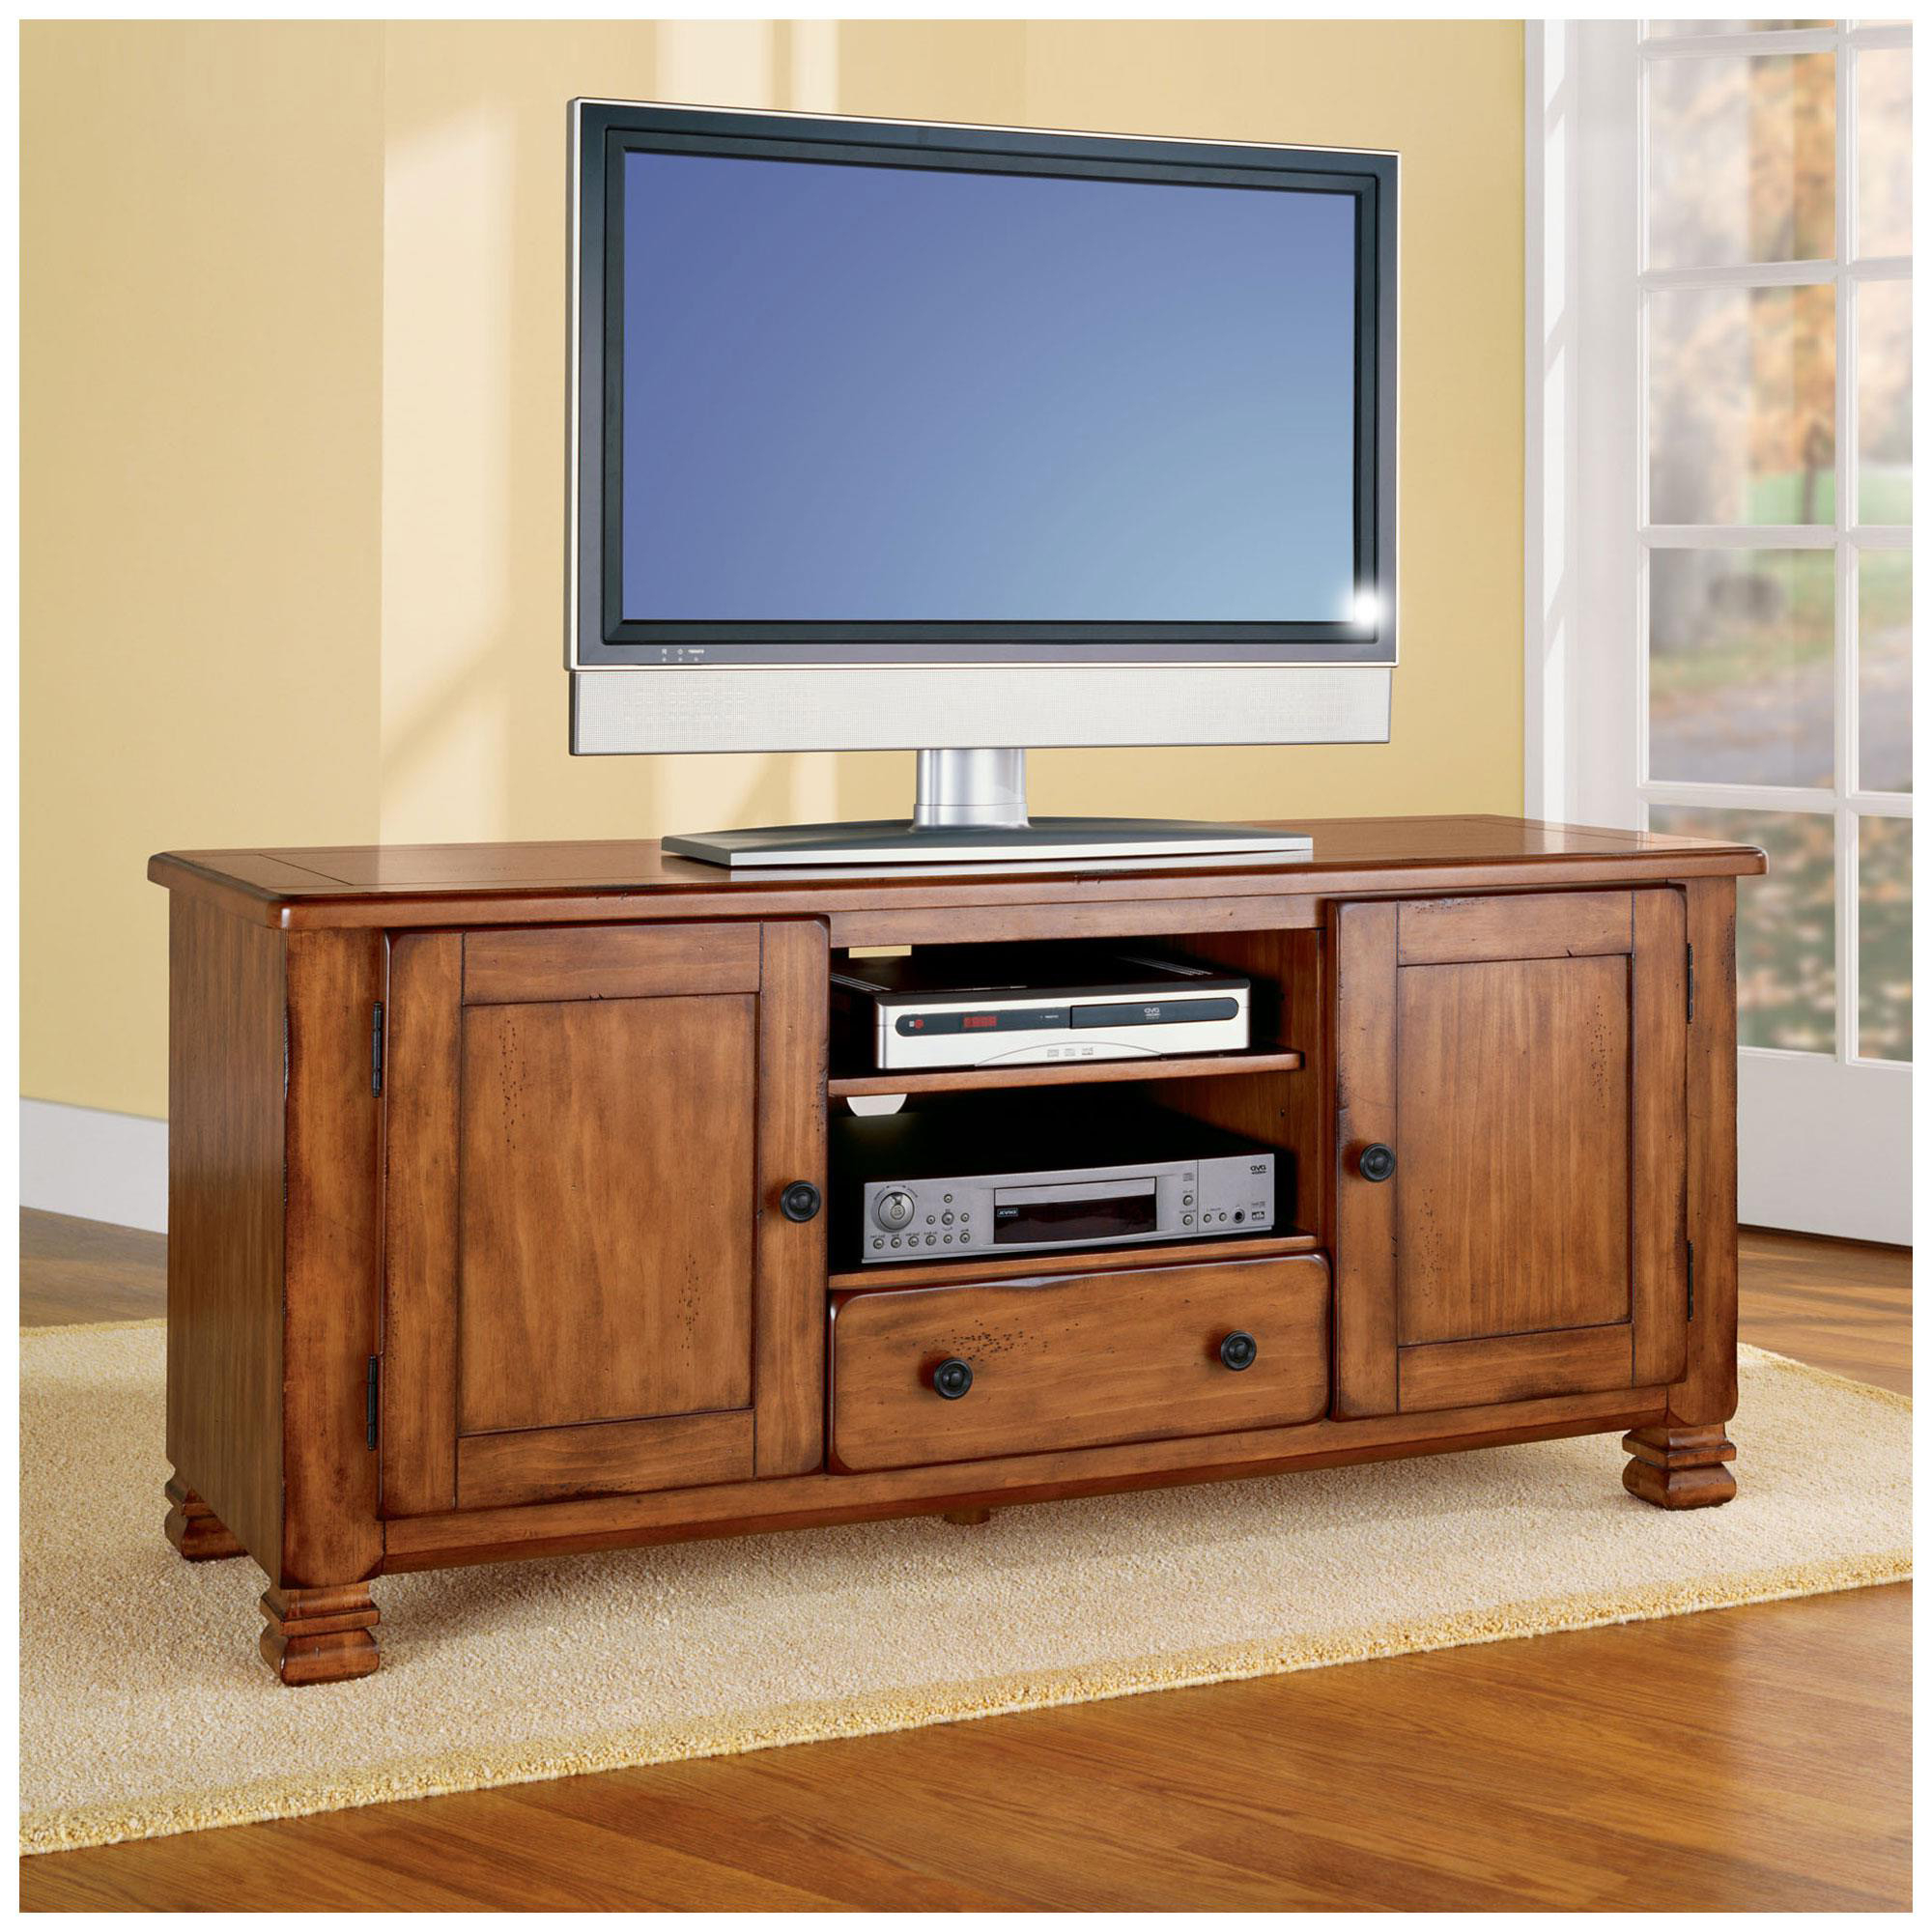 Recent Wooden Tv Stands For Flat Screens Regarding Amish Corner Tv Stand Solid Wood Console Mission Style Stands For (Gallery 9 of 20)